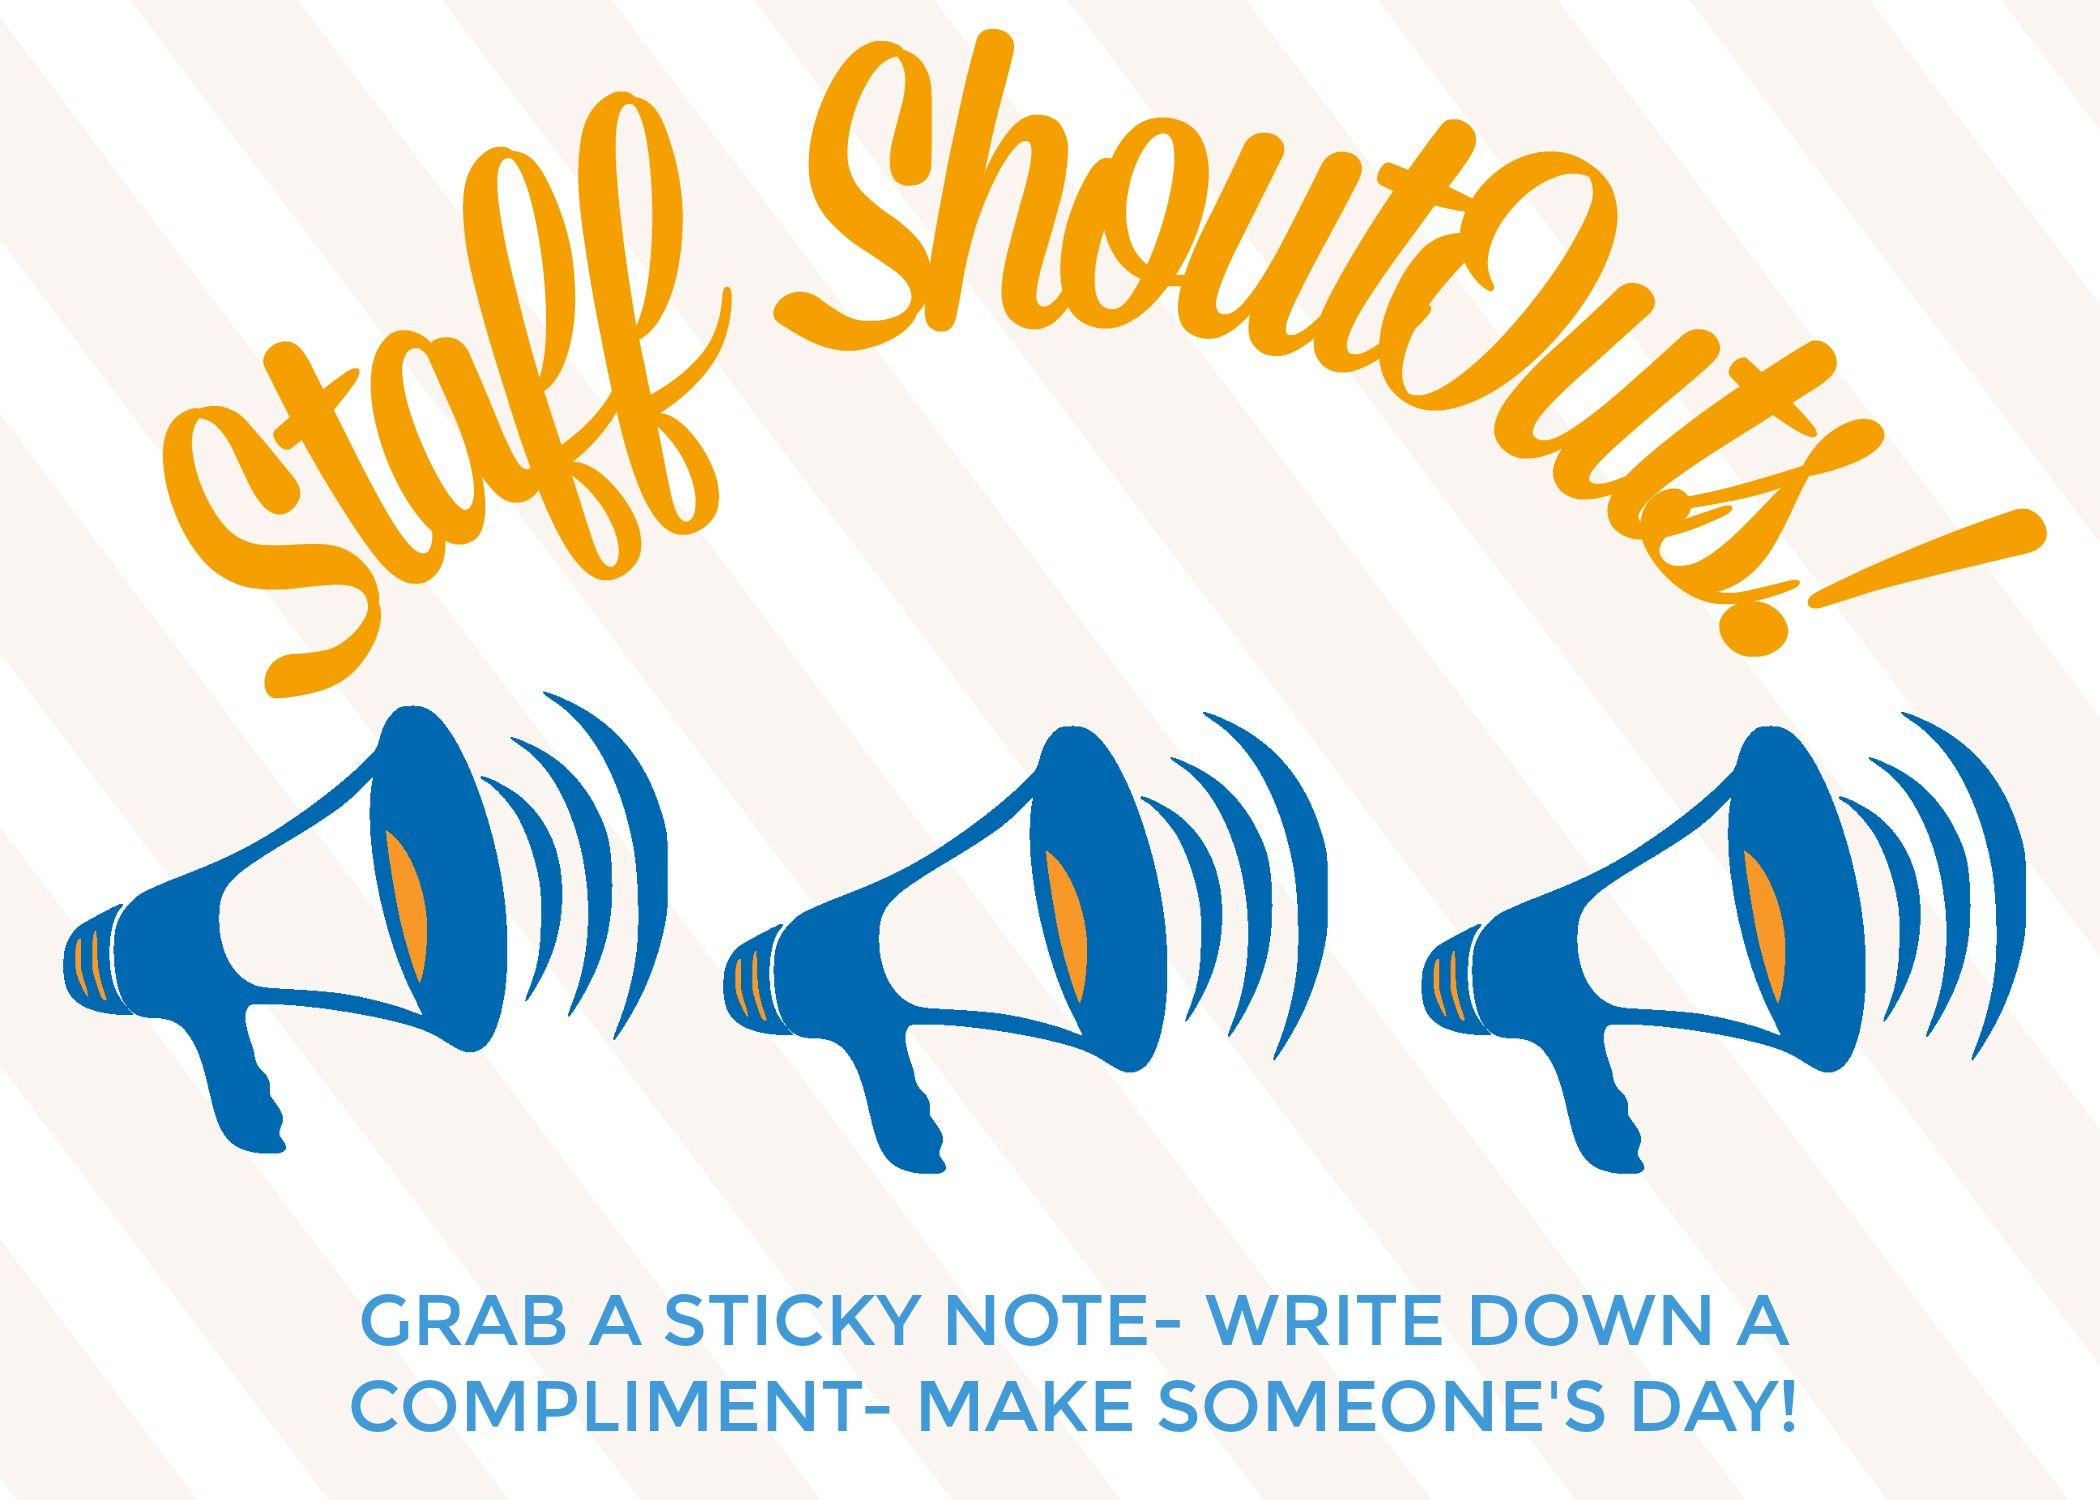 creating a staff shout out board to display in your breakroom is rh pinterest com Shout Out Graphics big shout out clip art